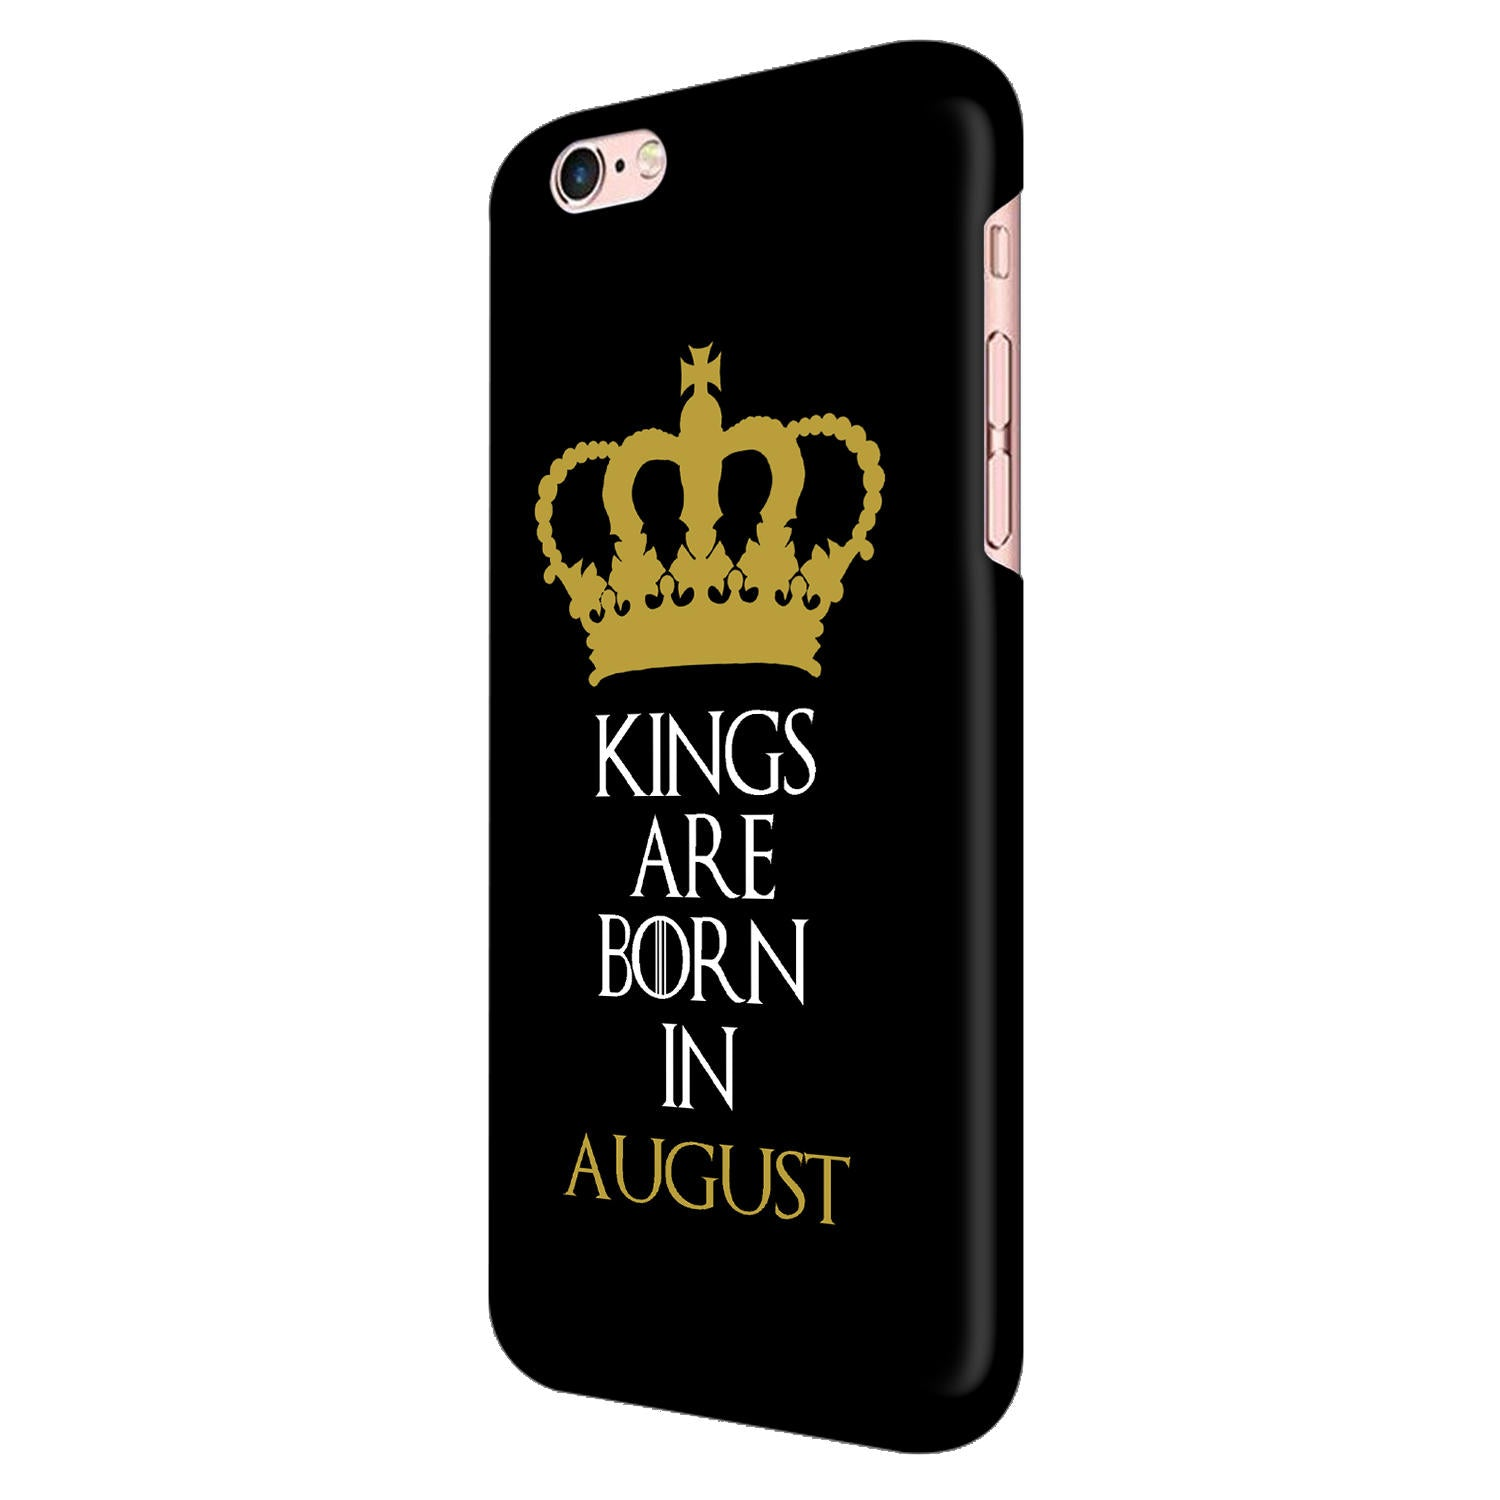 Kings August iPhone 6 Mobile Cover Case - MADANYU